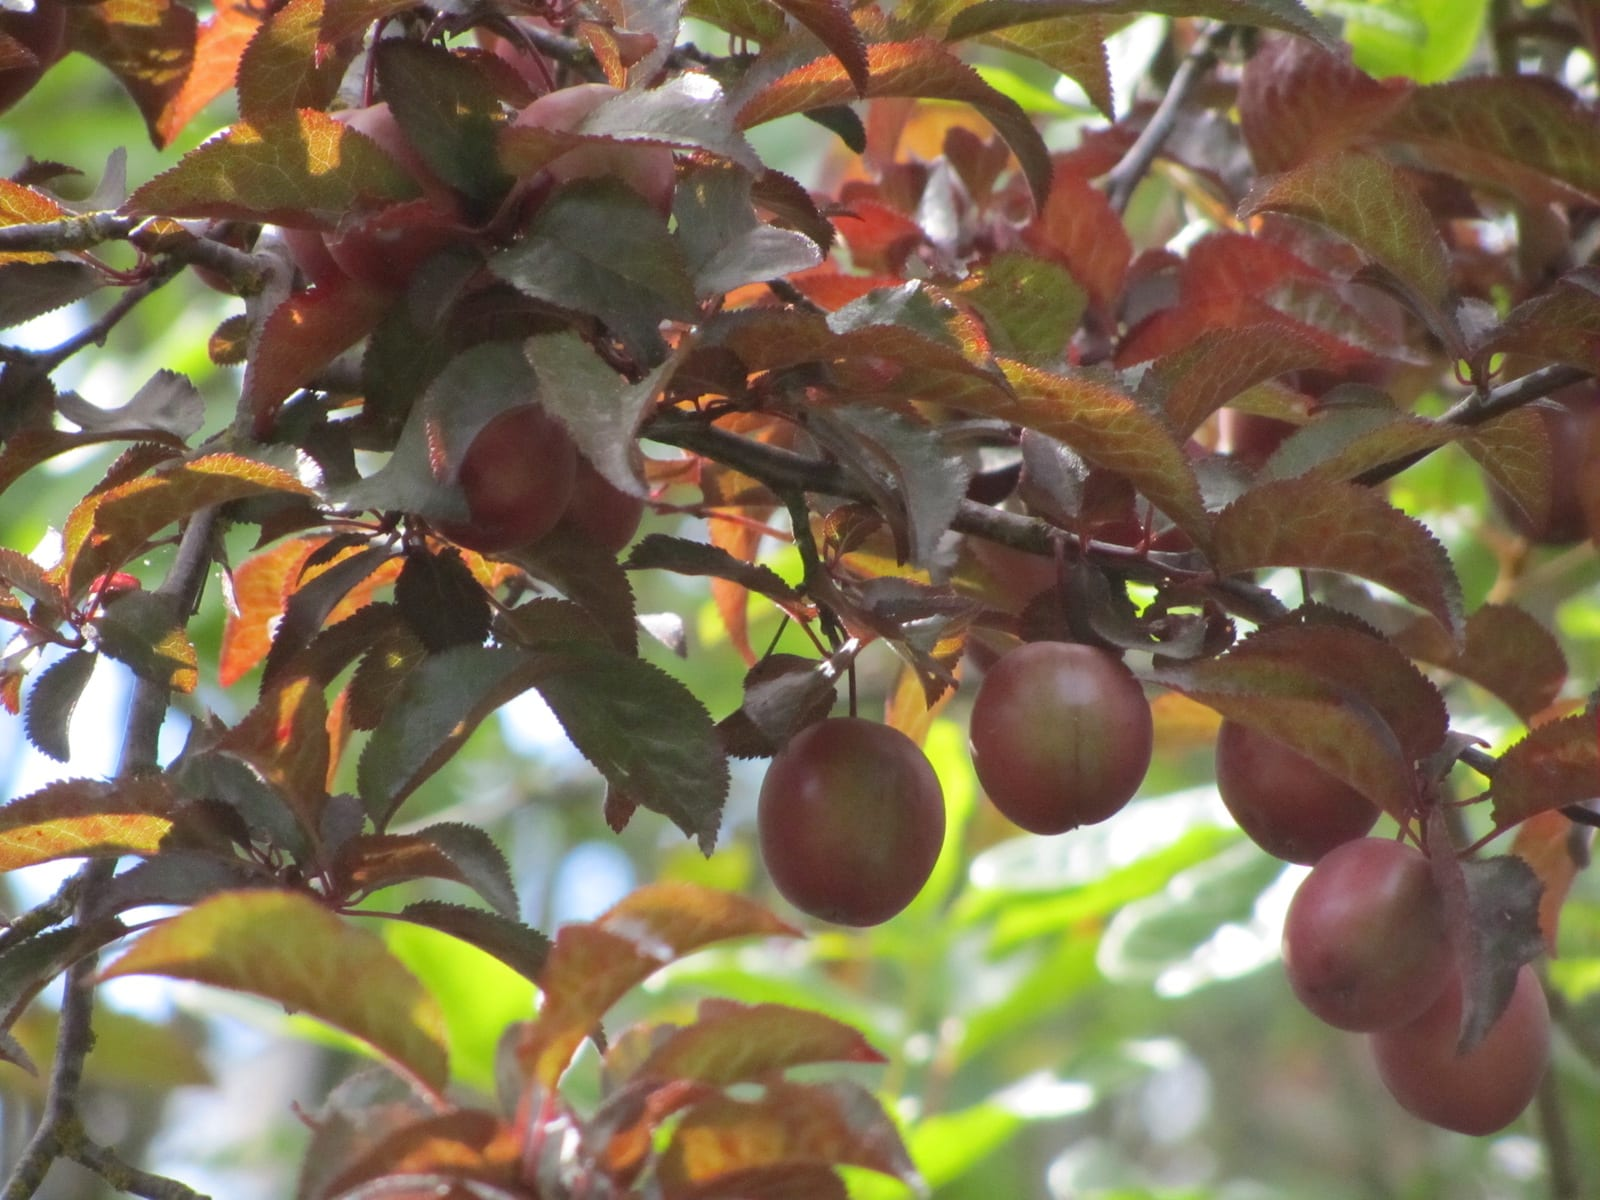 Foraging Wild Plums